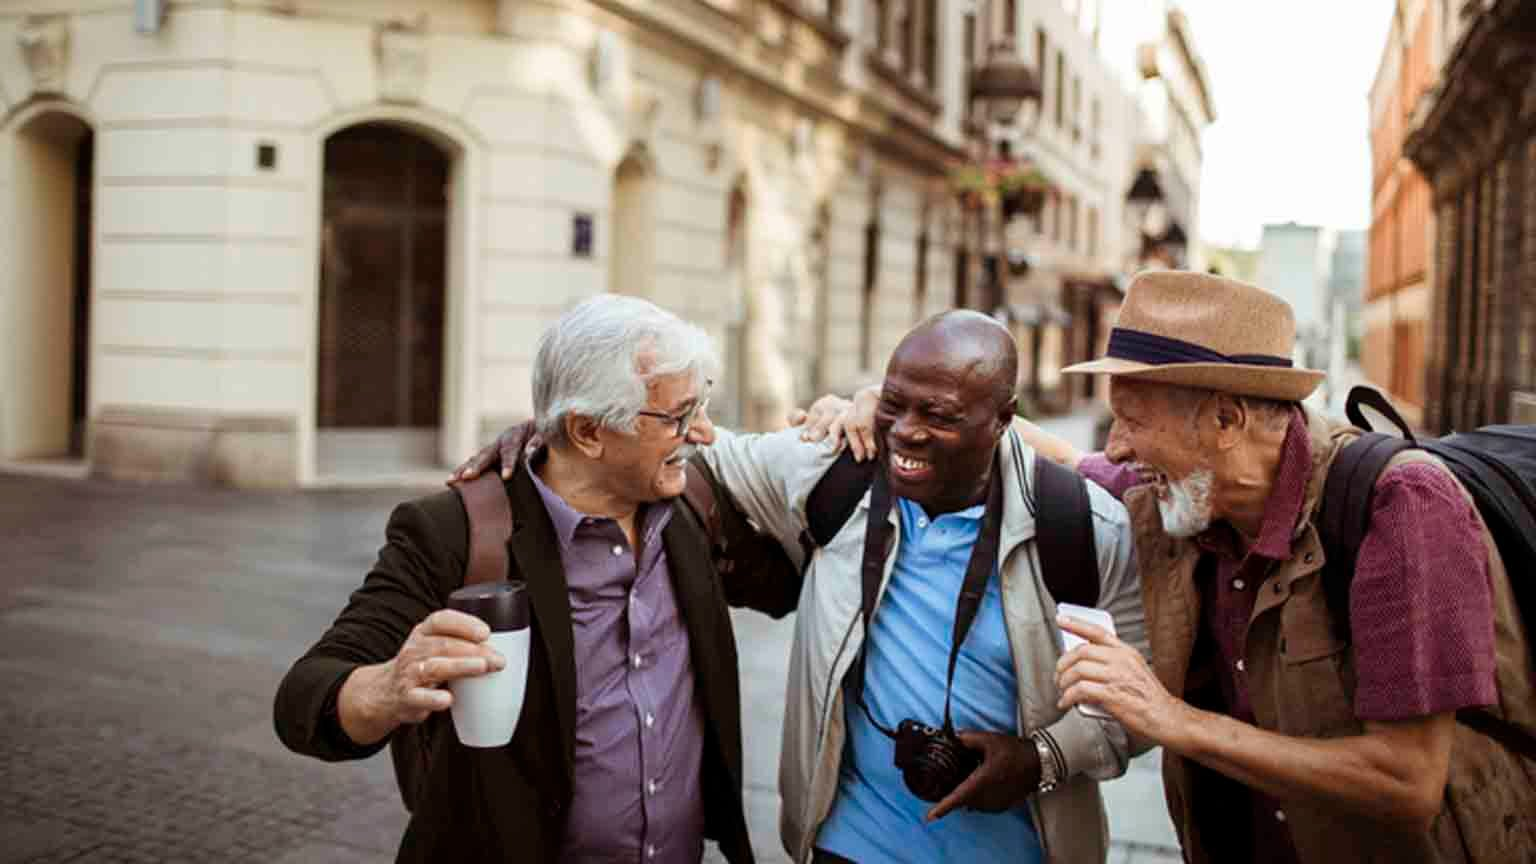 Close up of a group of male senior tourists exploring the city